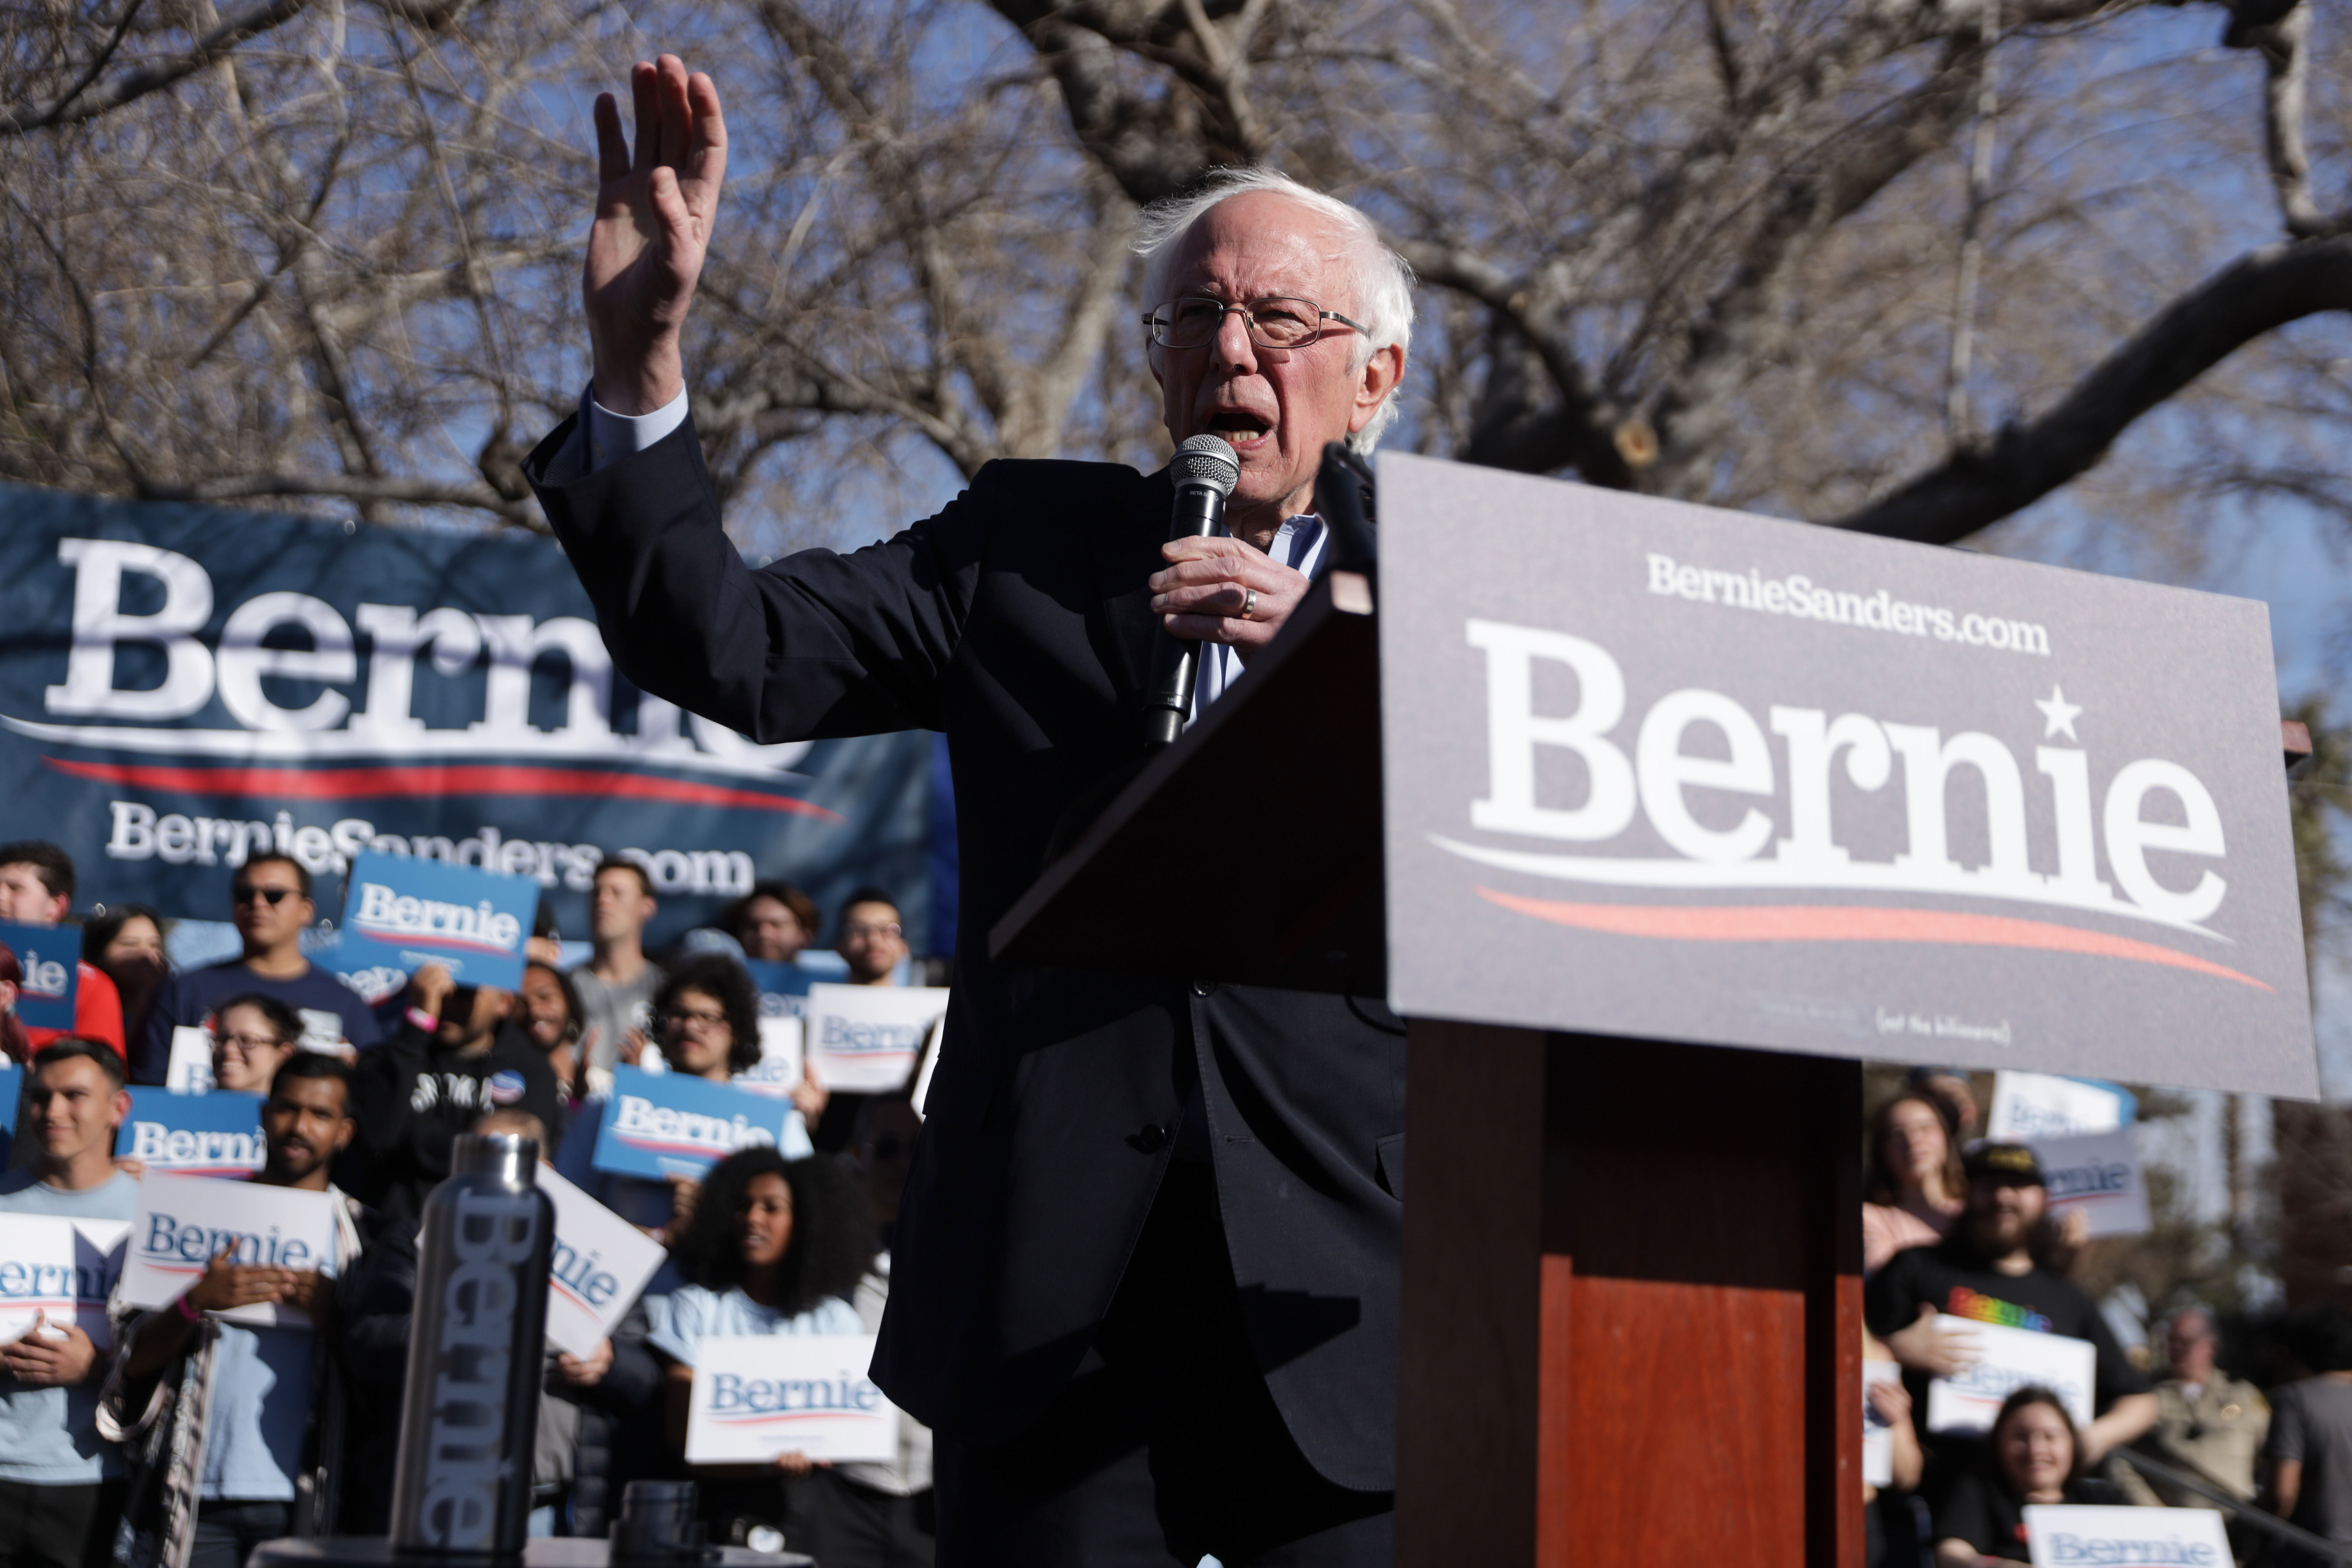 Democratic presidential candidate Sen. Bernie Sanders (I-VT) speaks during a campaign rally at University of Nevada February 18, 2020 in Las Vegas, Nevada. (Alex Wong/Getty Images)